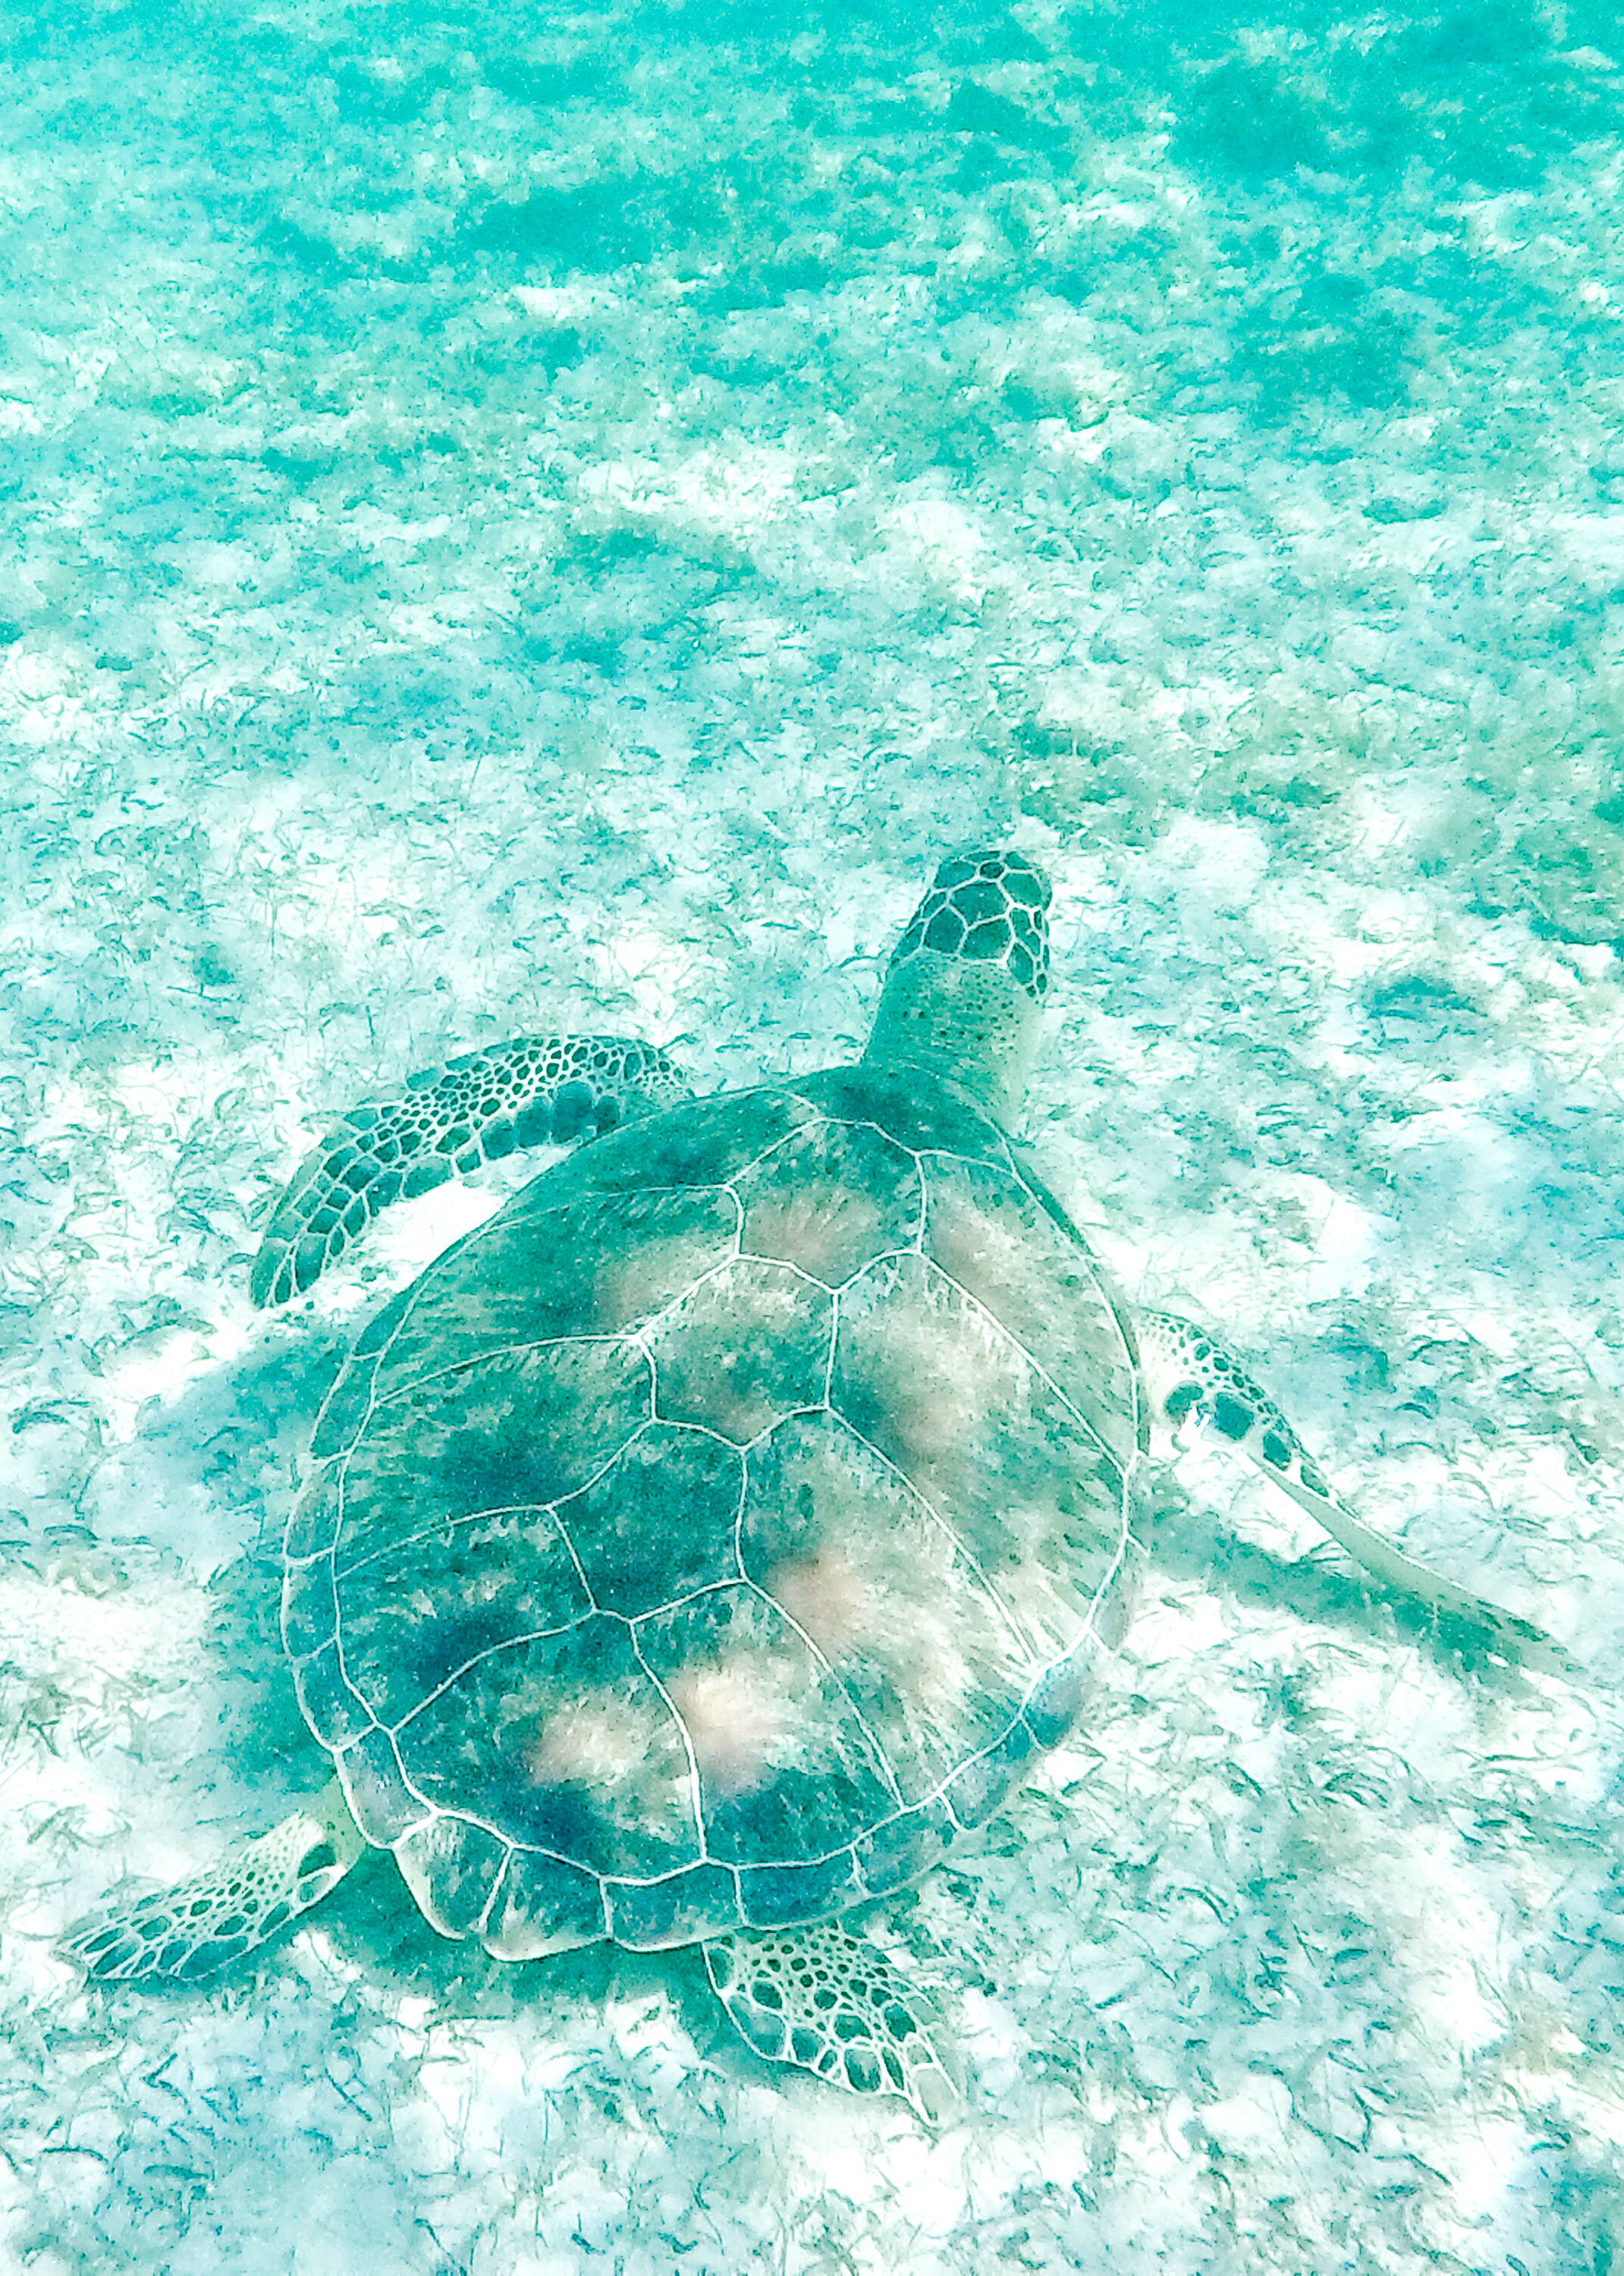 Swimming with turtles at Spott's Beach